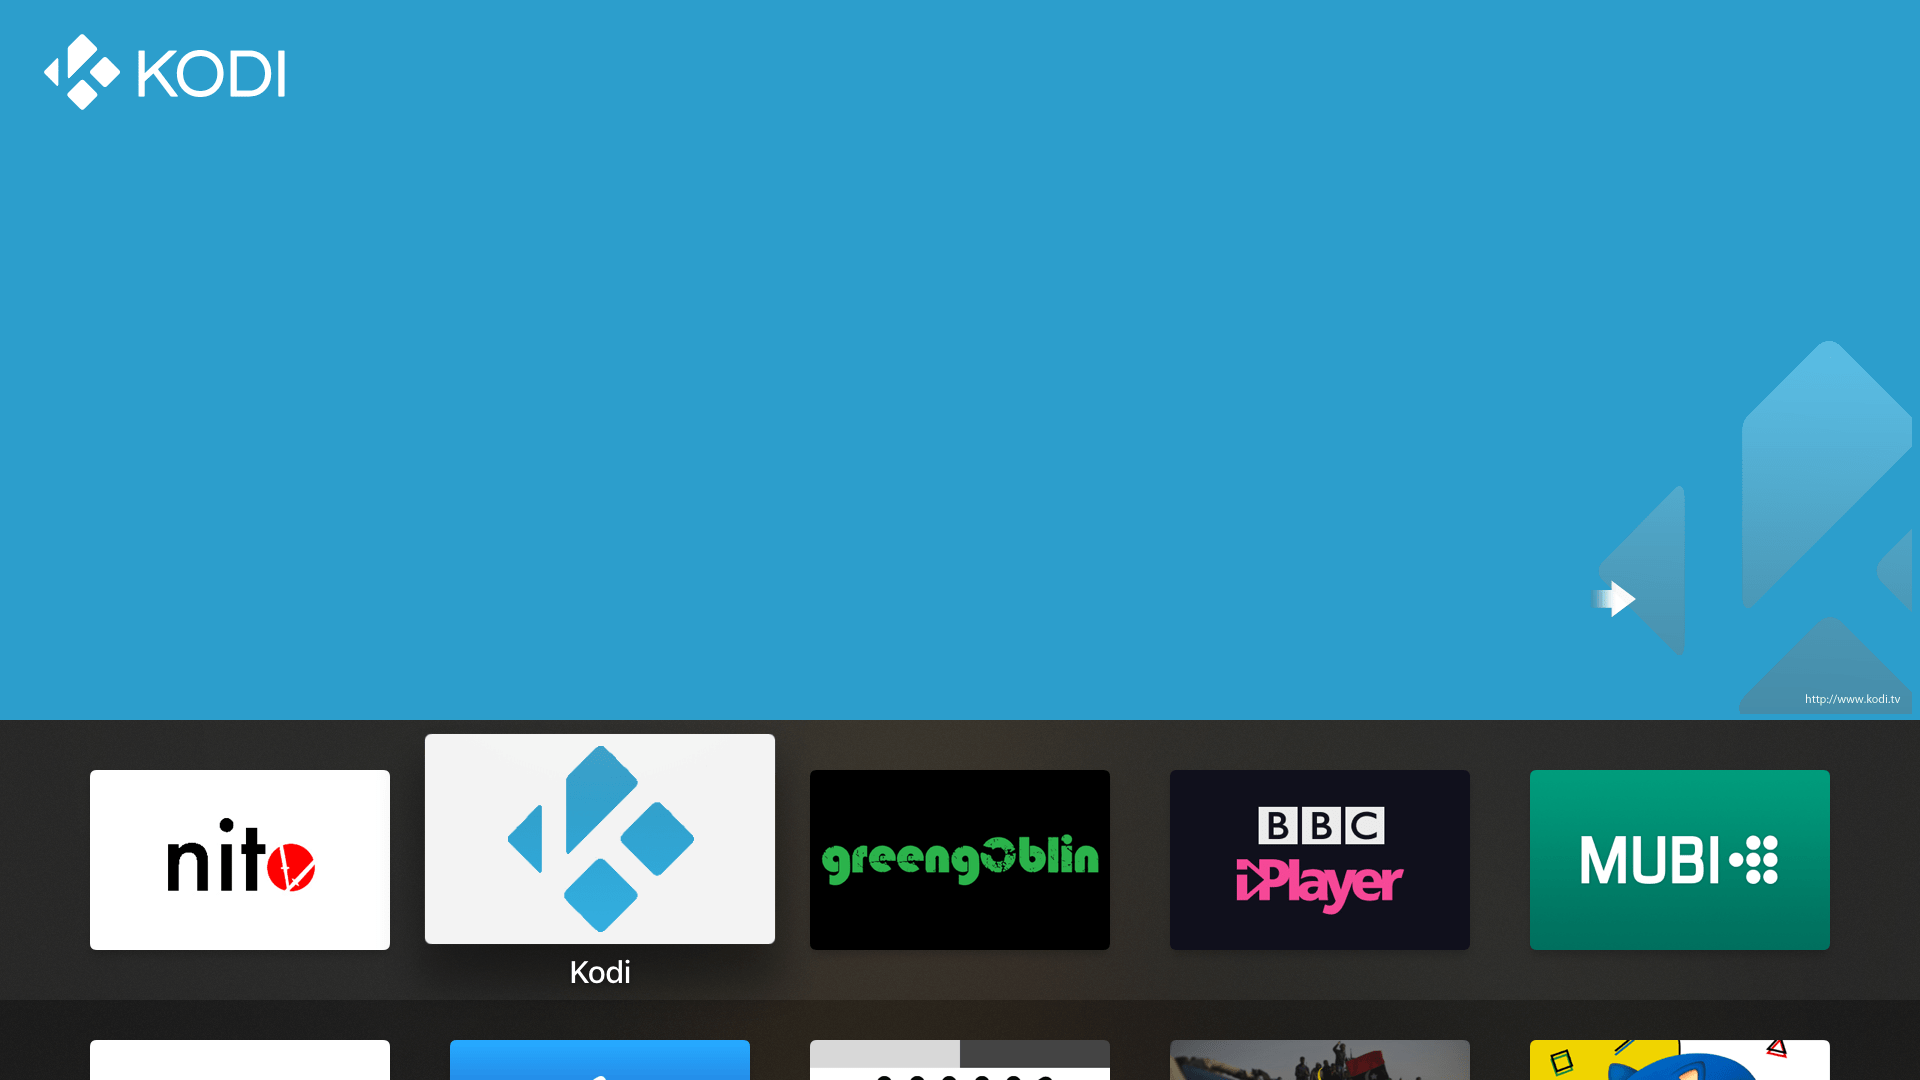 kodi on Home screen